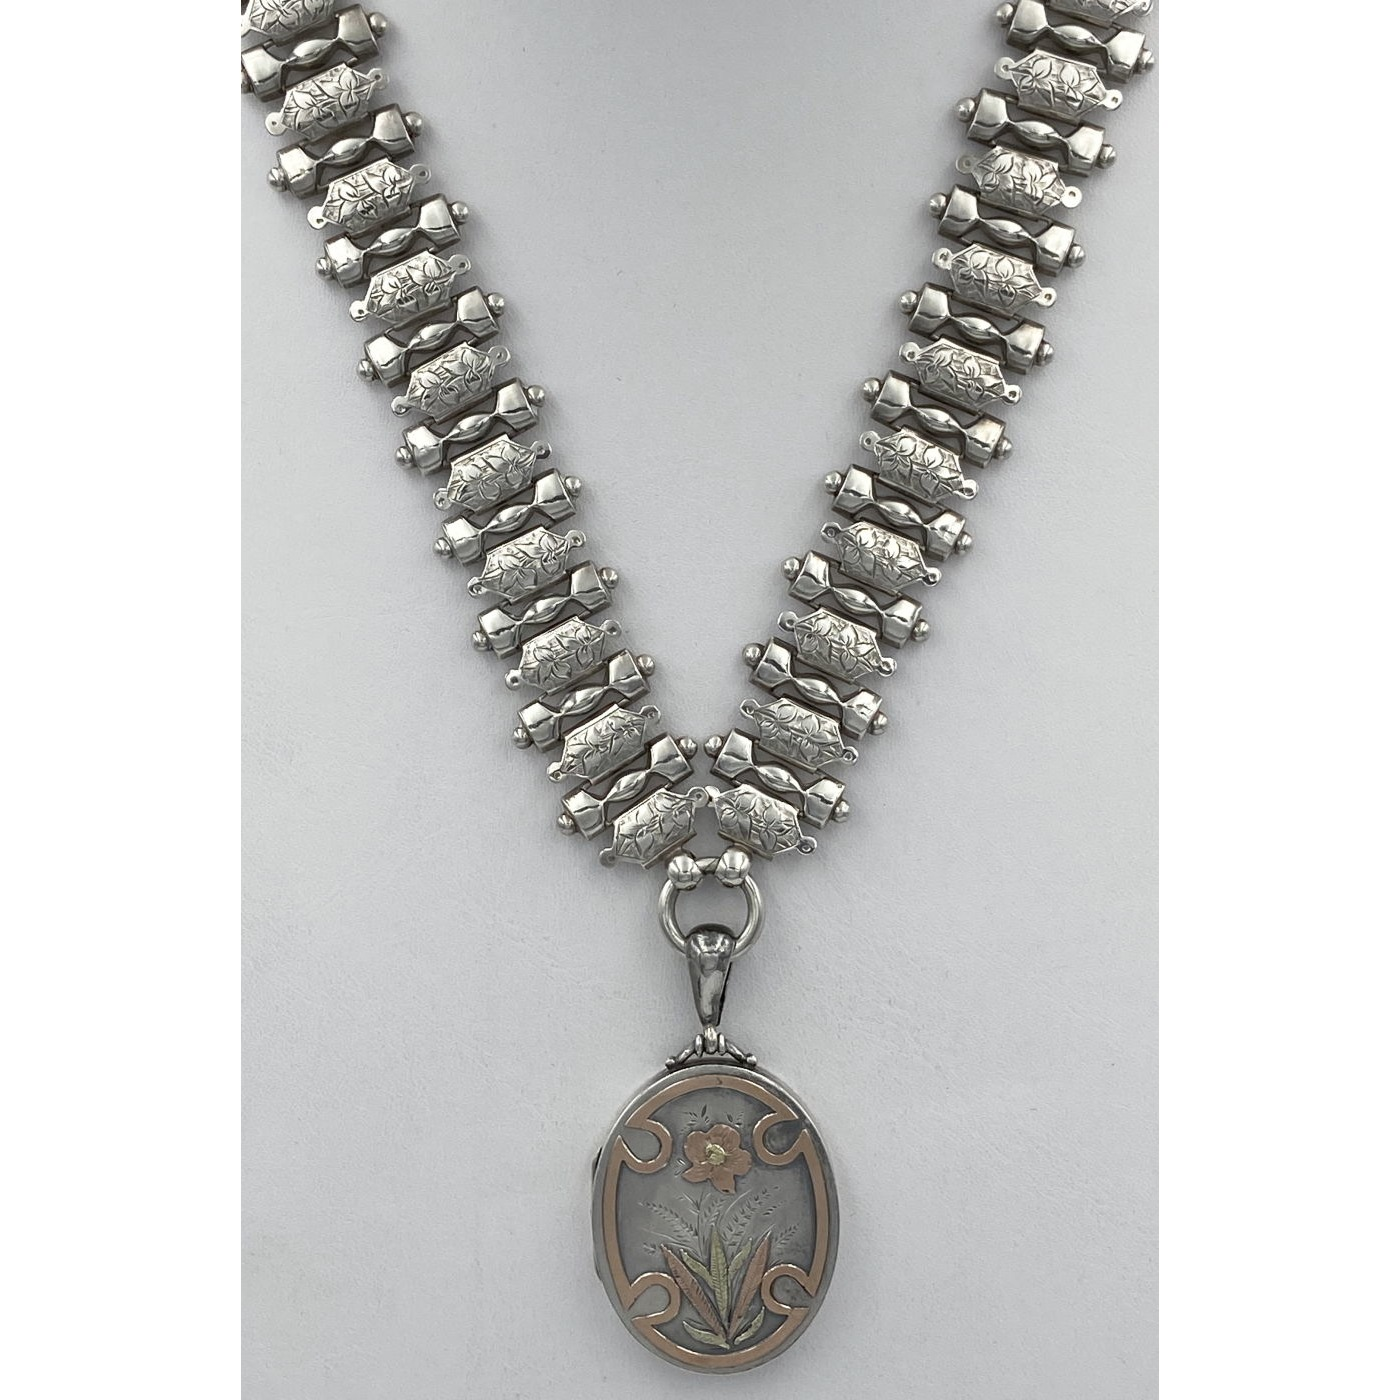 Fabulous Wide Floral Beaded Antique English Silver Collar Chain - Chain Only